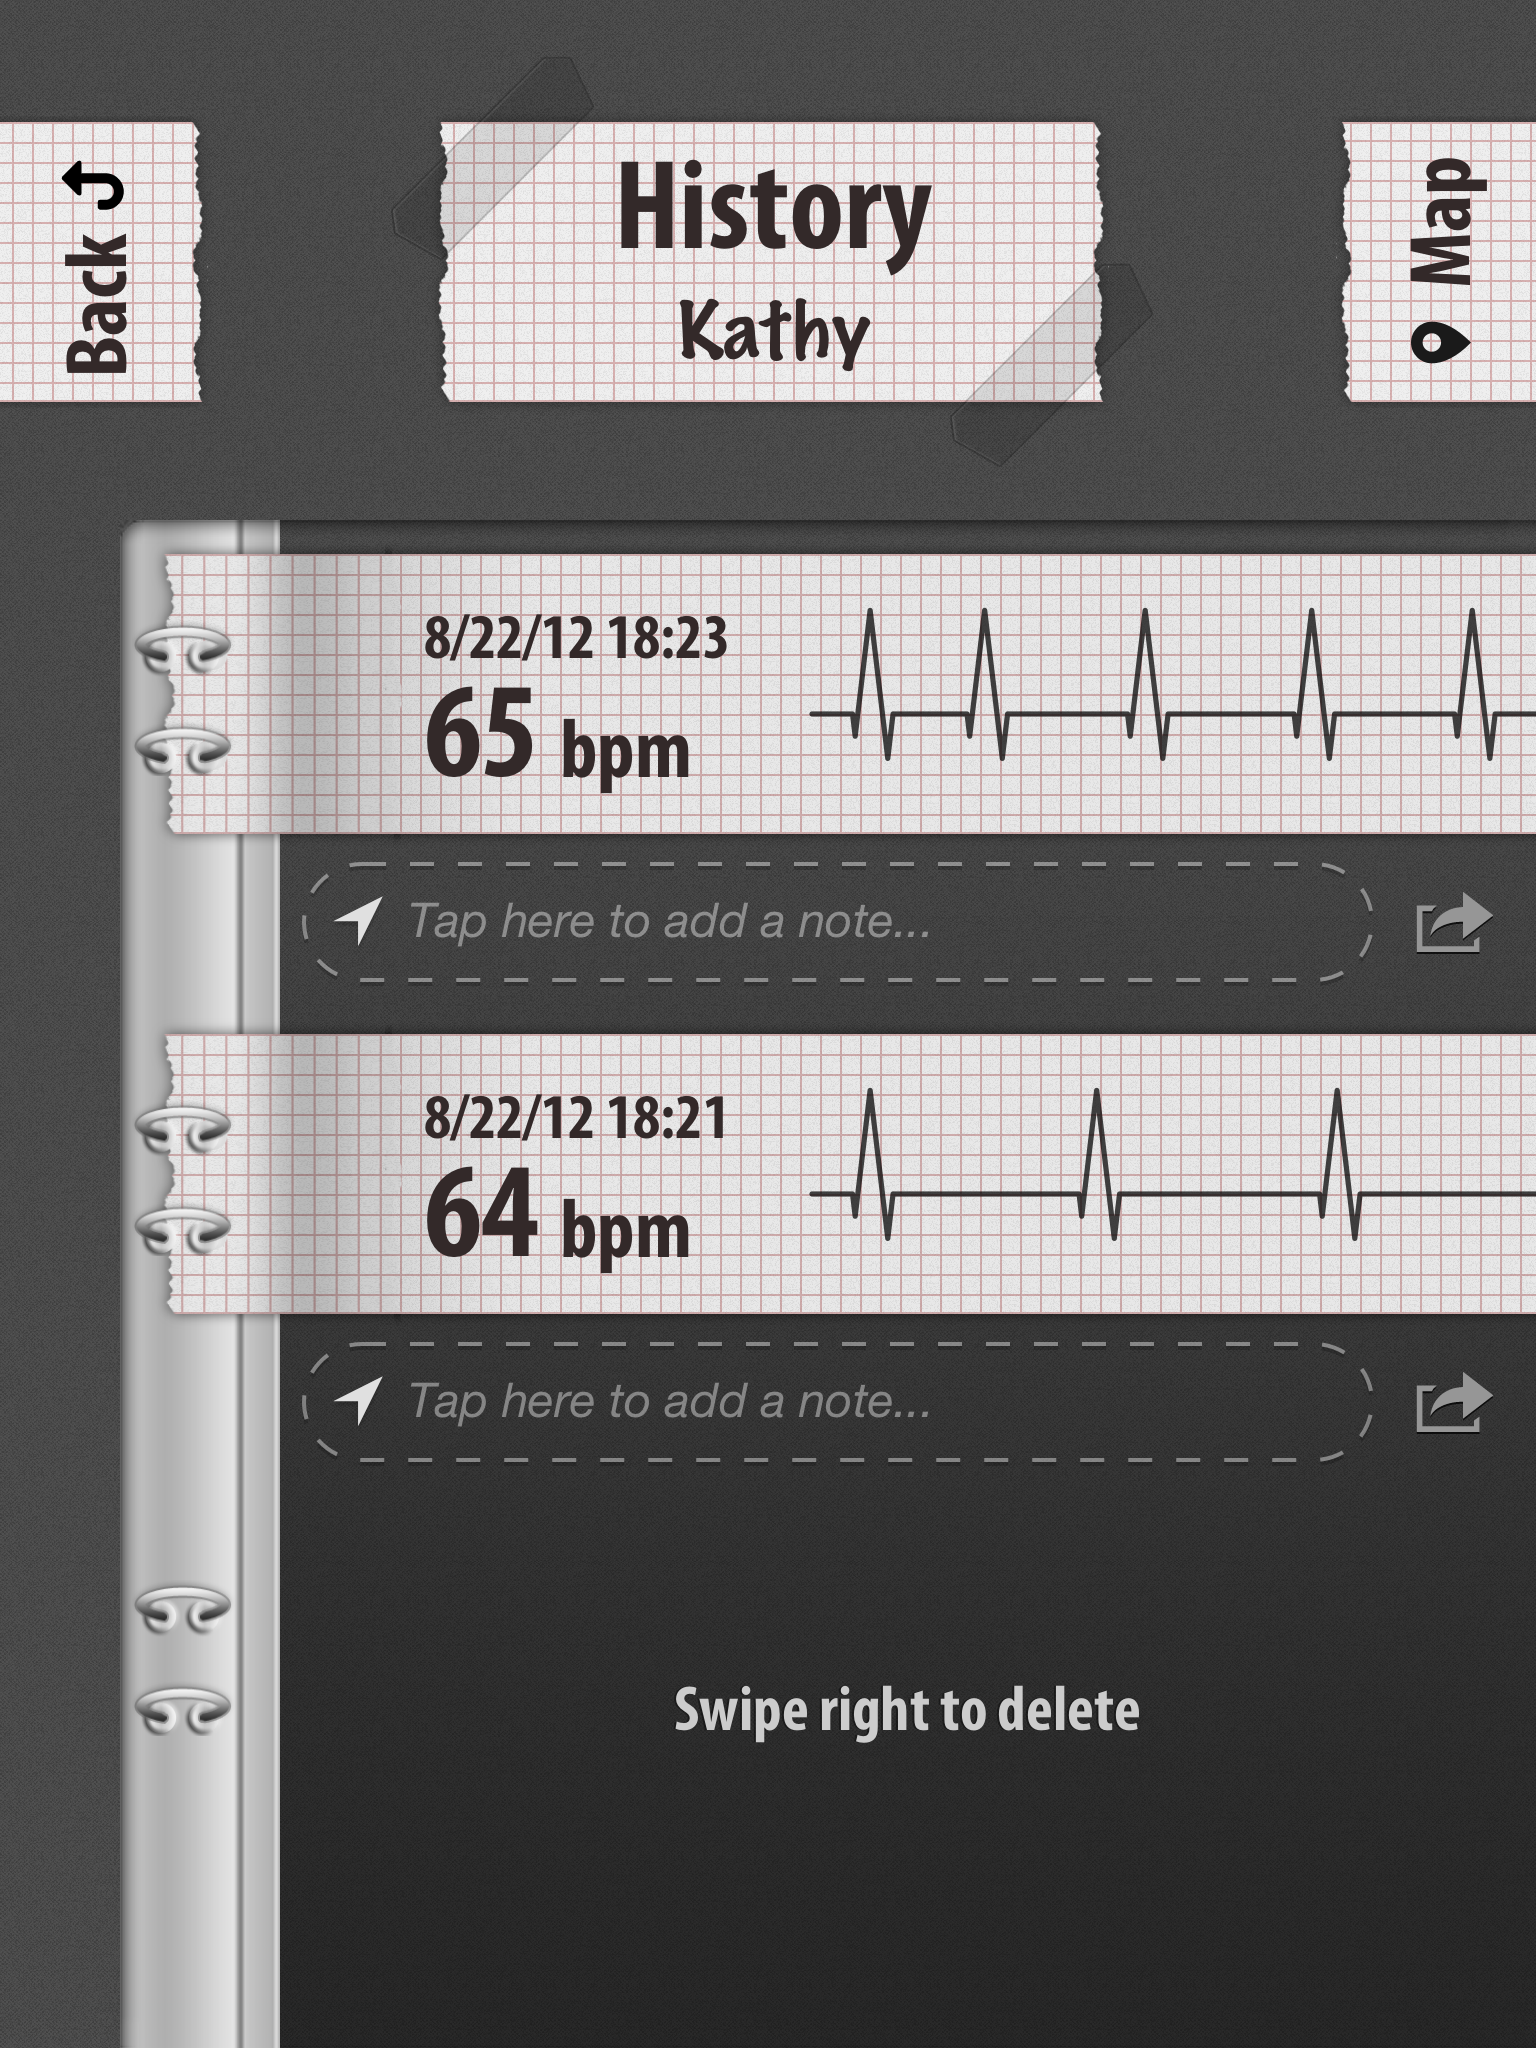 Heart rate apps such as pulse phone and heart rate - Notes Can Be Added And Locations Recorded Through The Phones Gps Although The Pattern Is Of A Qrs Complex The Machine Is Only Picking Up The Pulse